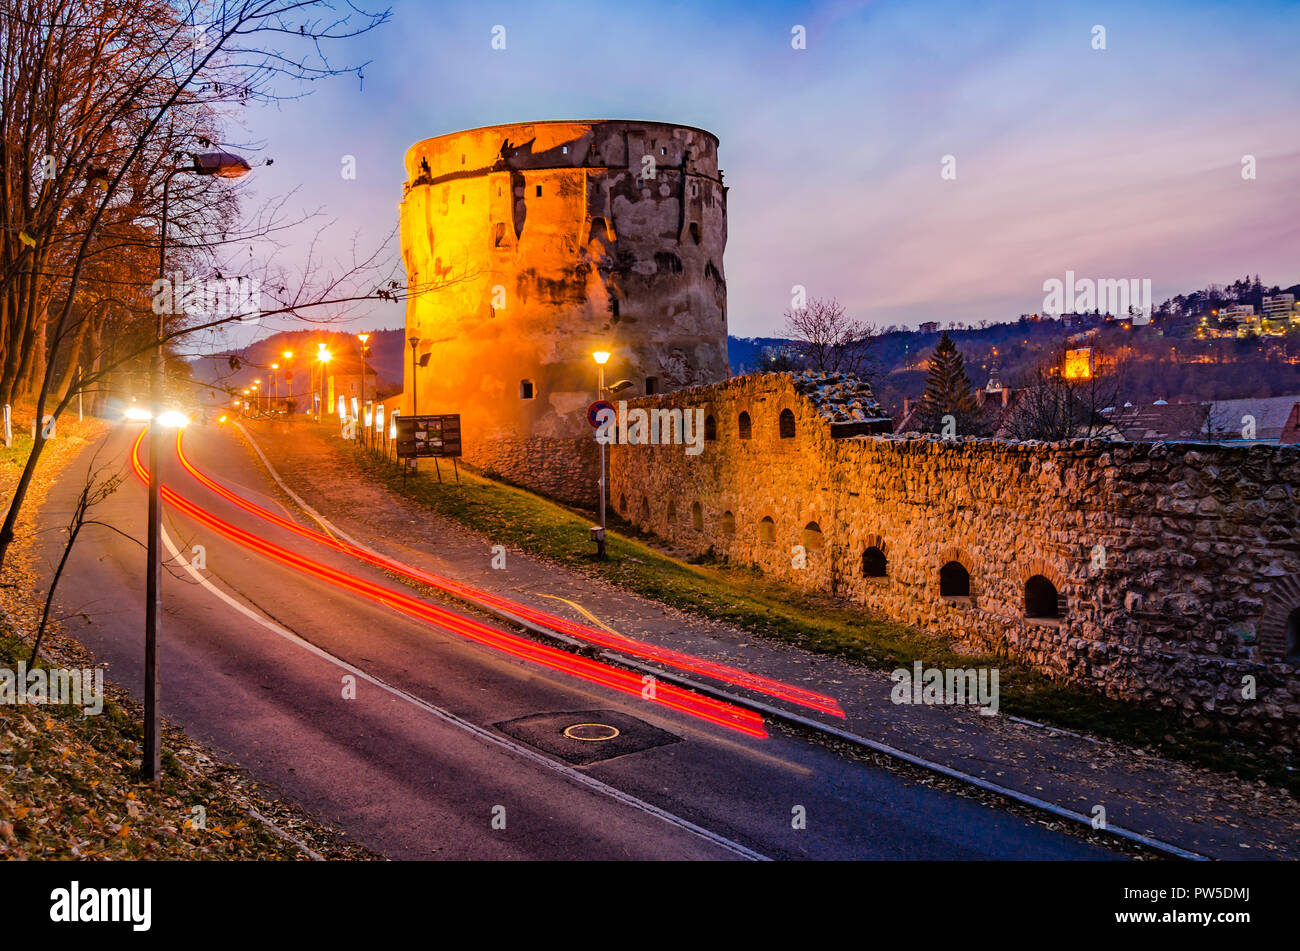 Brasov, Romania, The Drapers' Bastion: Night view of the Drapers in the sunset lights - Stock Image